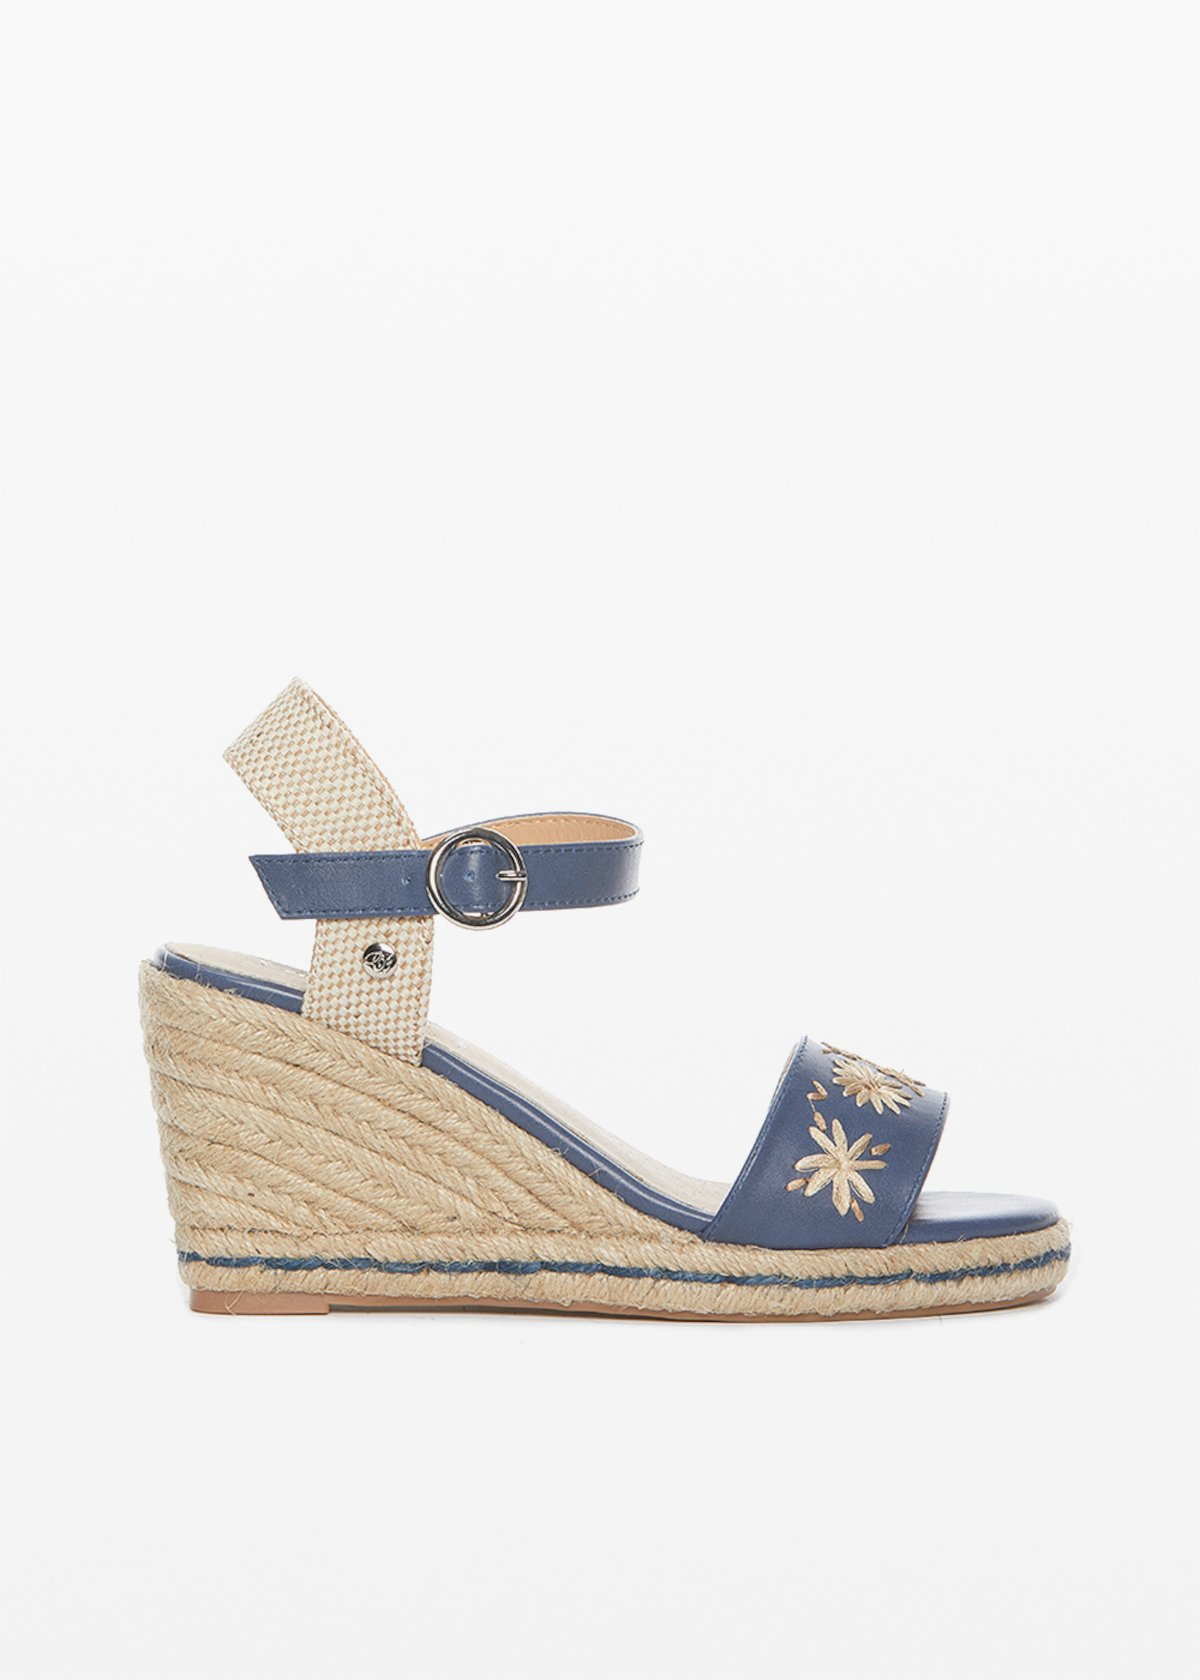 Faux leather and straw Saint sandals with flowers detail - Blue - Woman